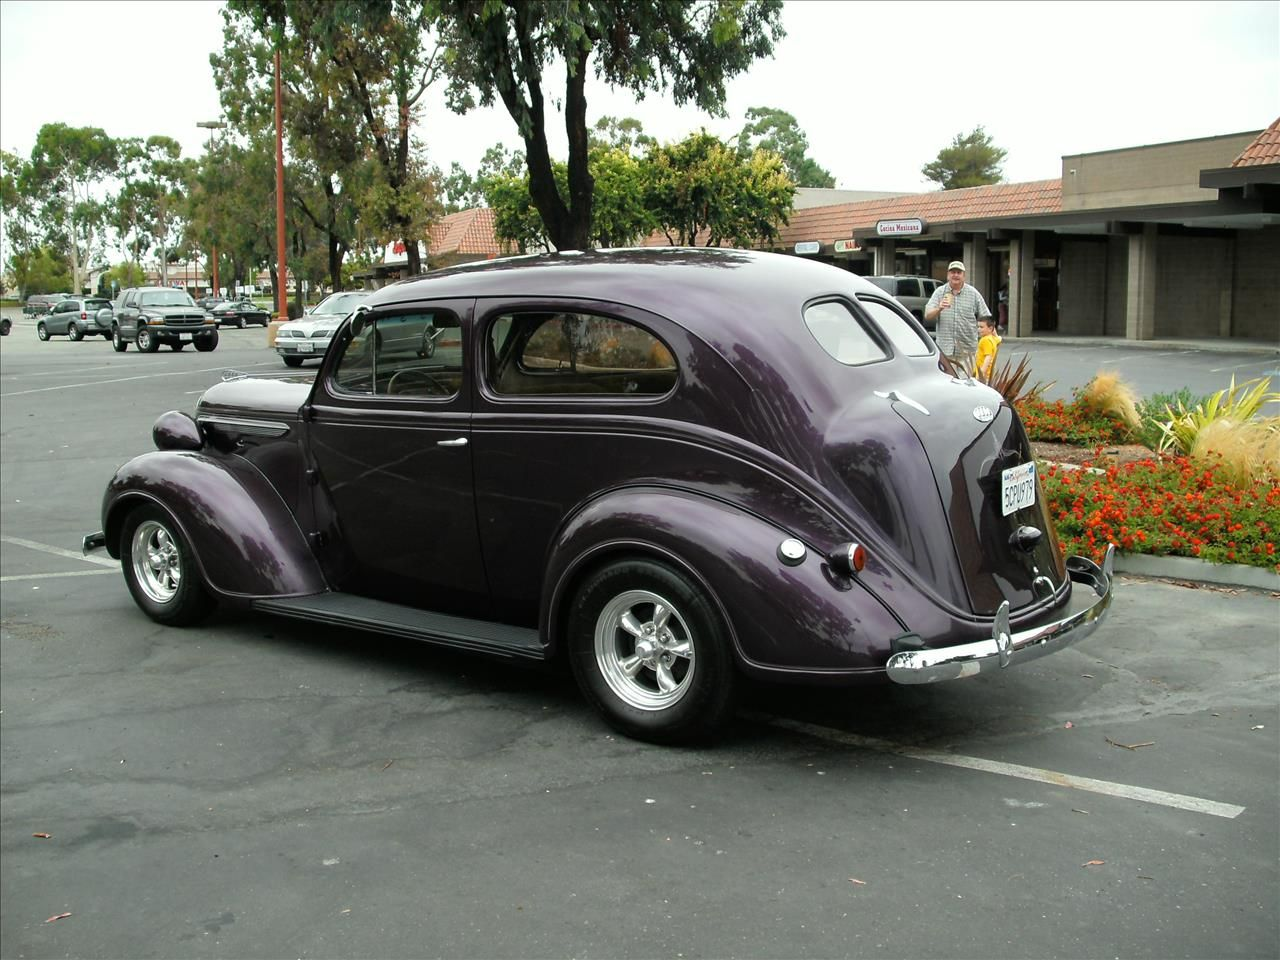 This 1938 Plymouth Sedan is listed on Carsforsale.com for $28,900 ...